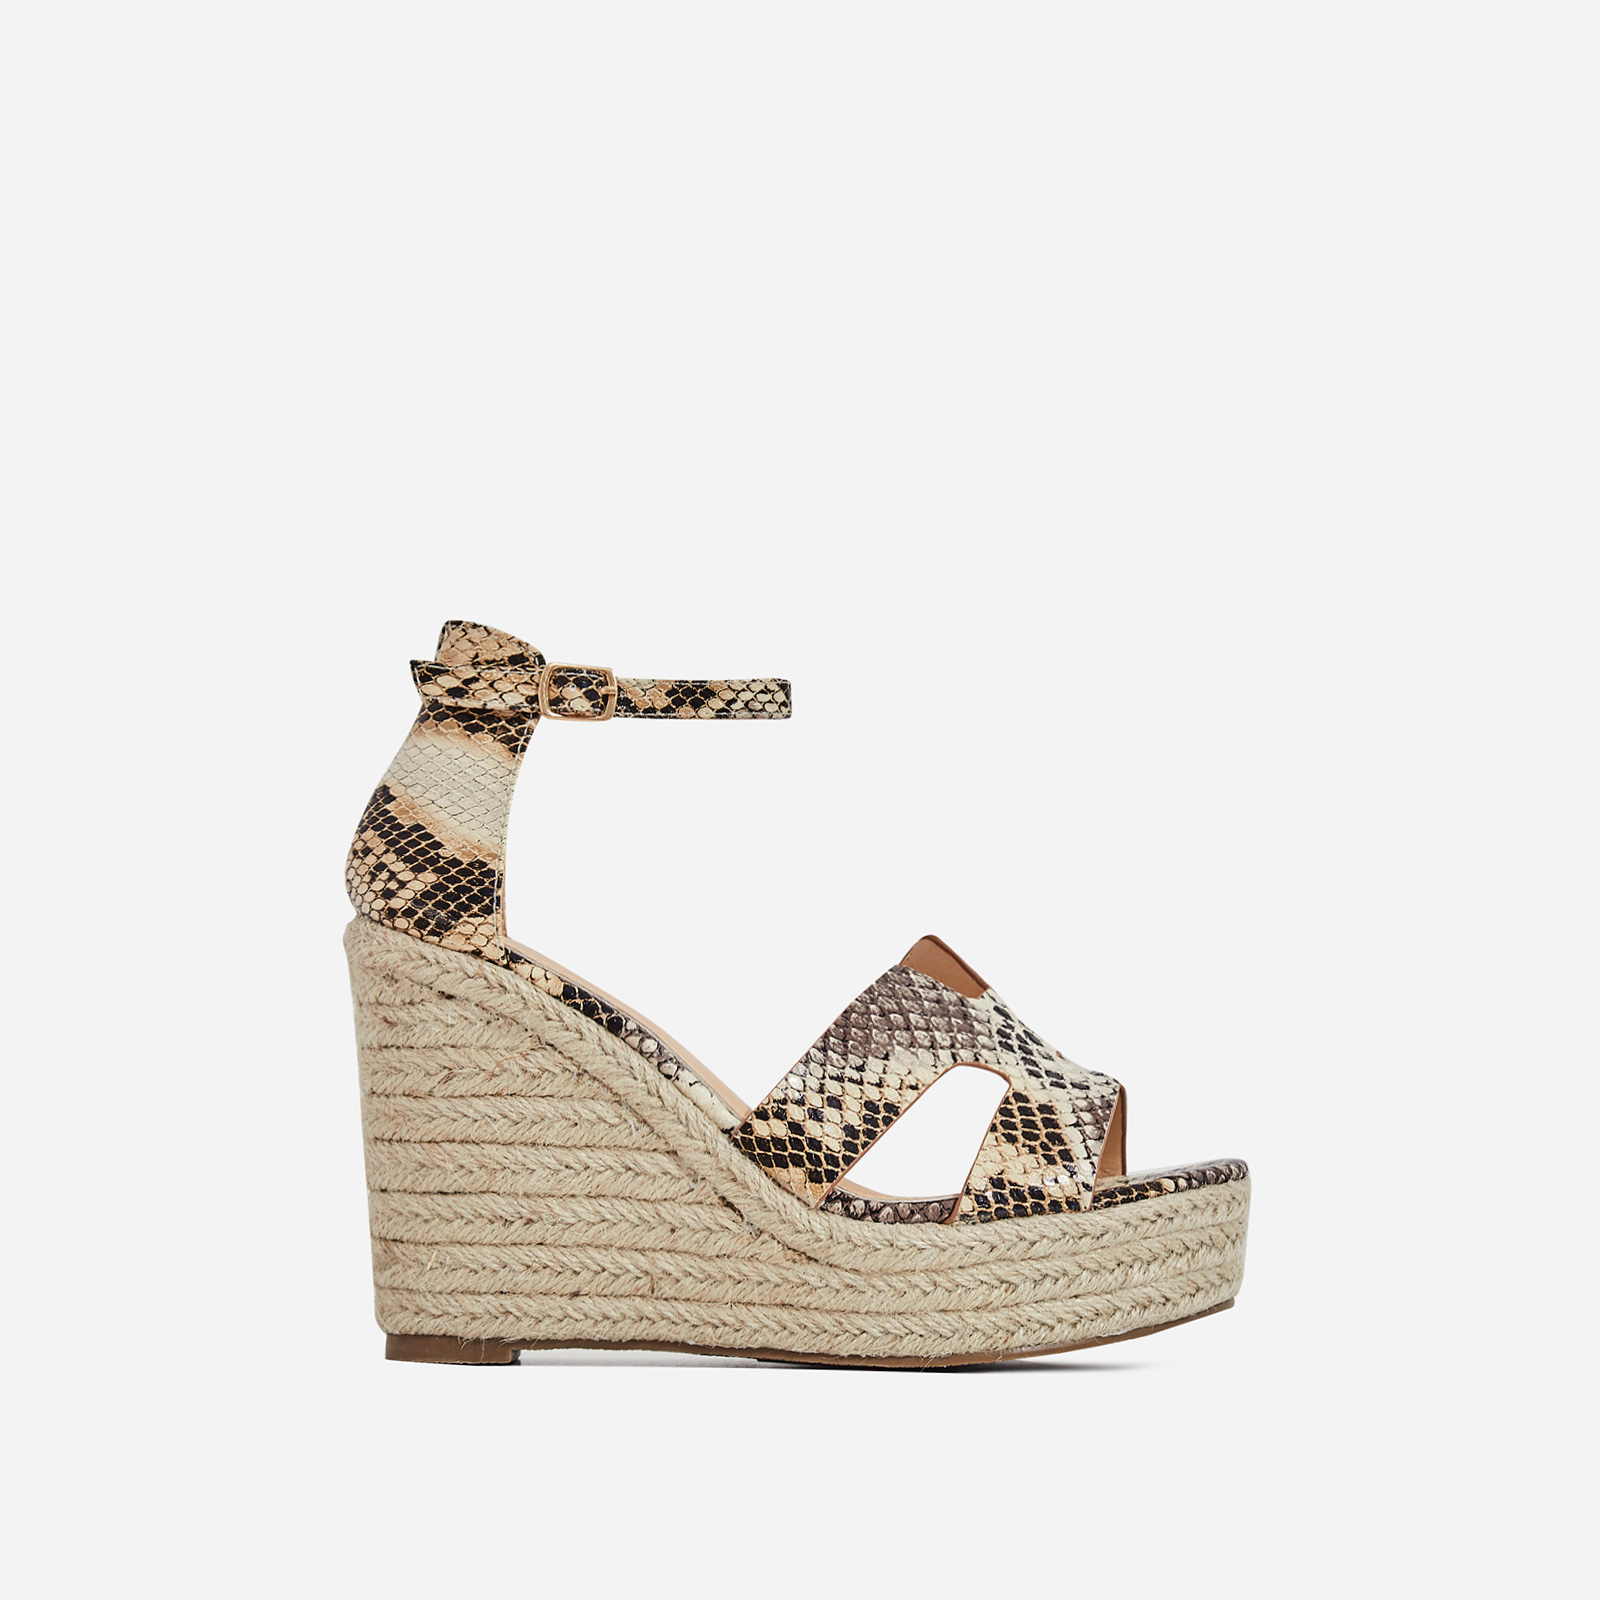 Kayson Platform Espadrille Wedge Block Heel In Nude Snake Print Faux Leather